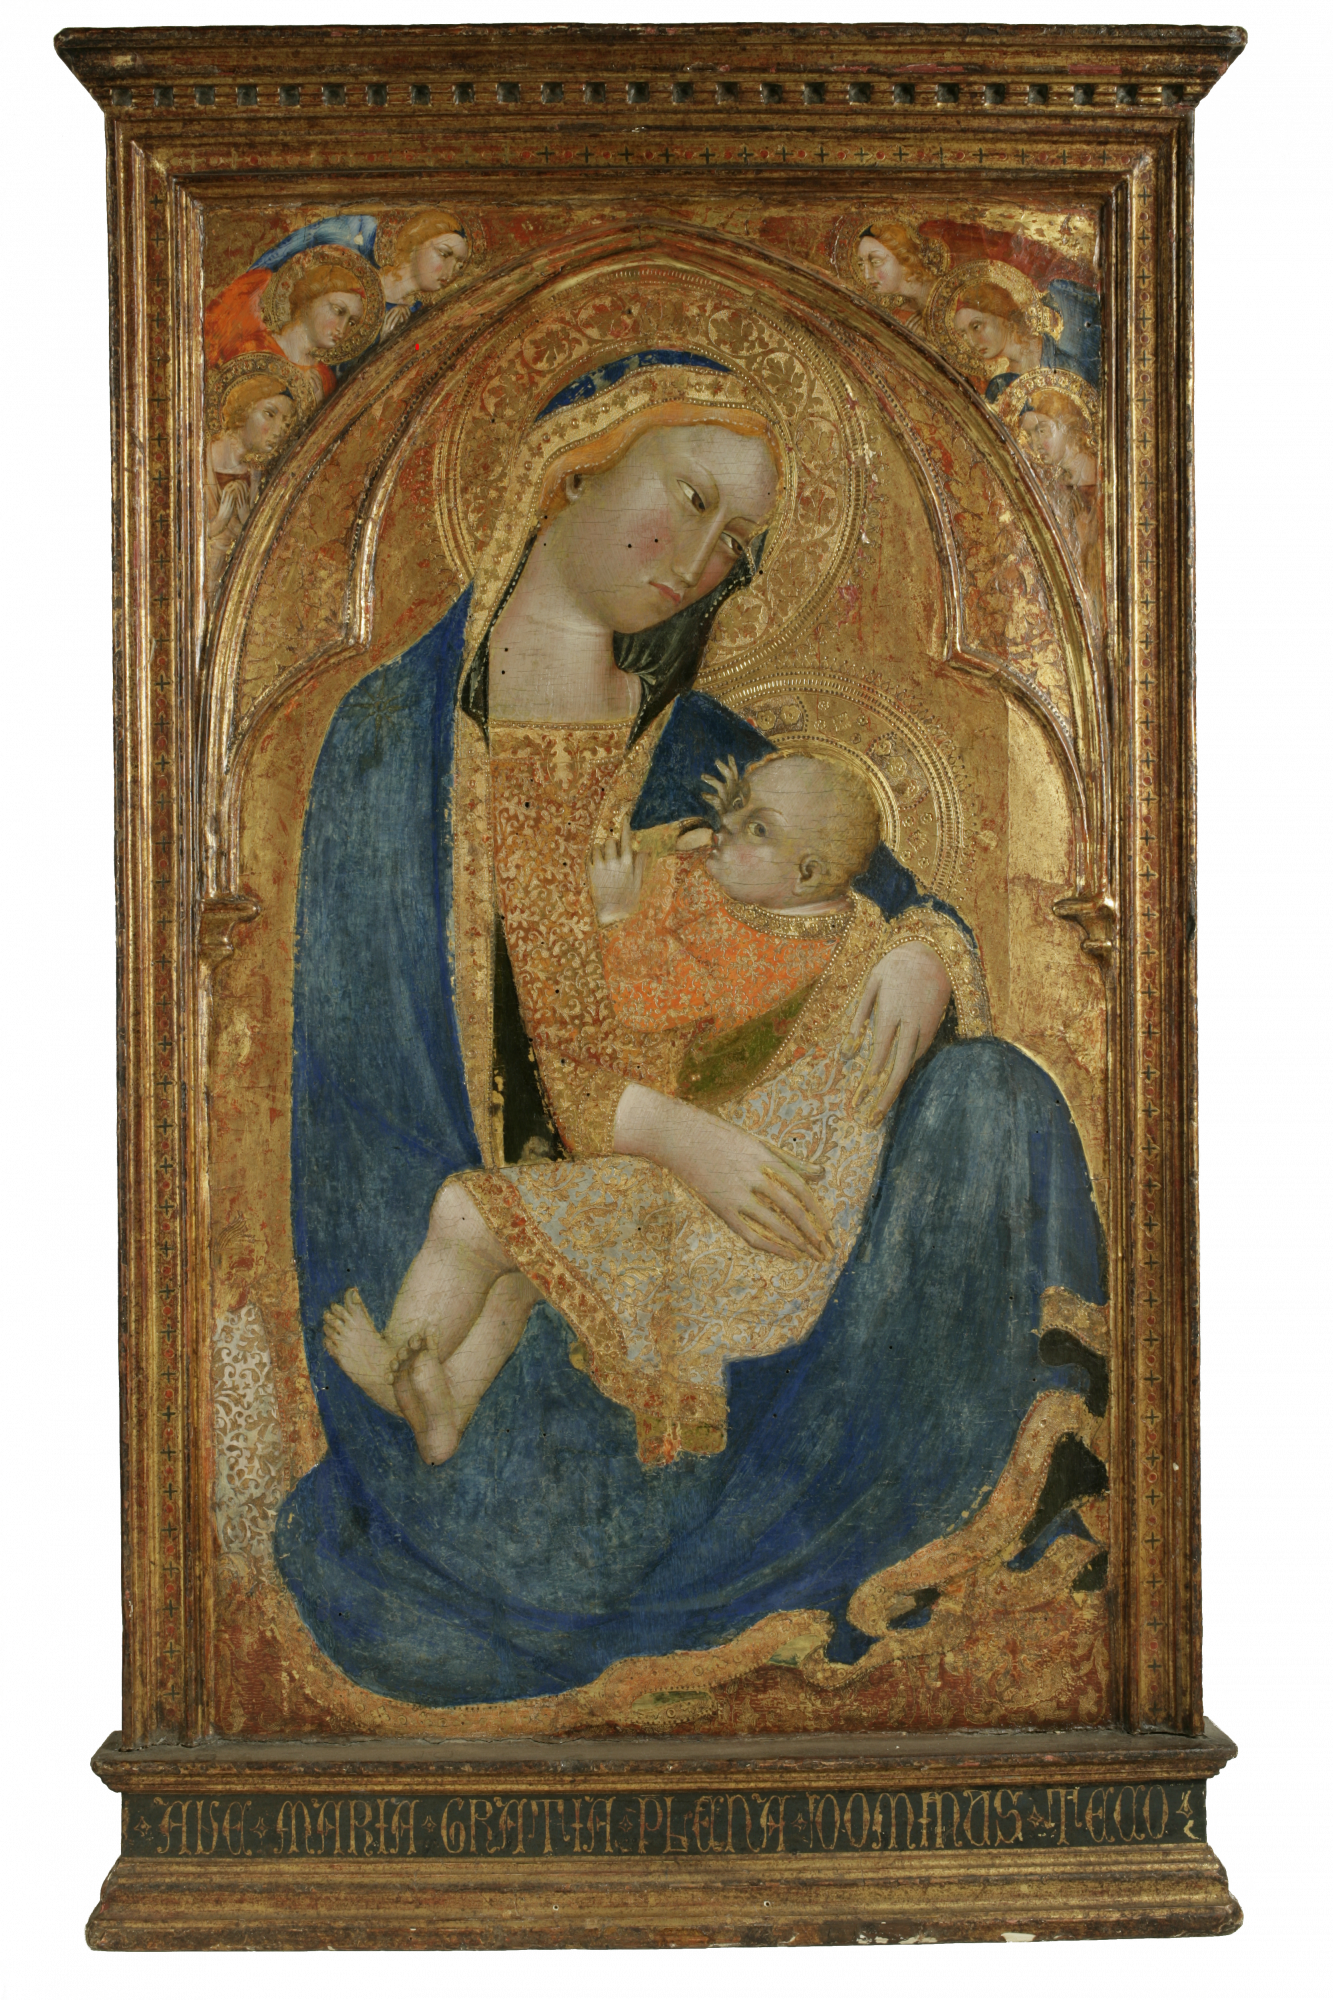 Giovanni di Nicola da Pisa (Italian, act. 1326–1358) Madonna of Humility, with Angels, 14th century. Tempura on panel. Gift of the Samuel H. Kress Foundation, 60.13